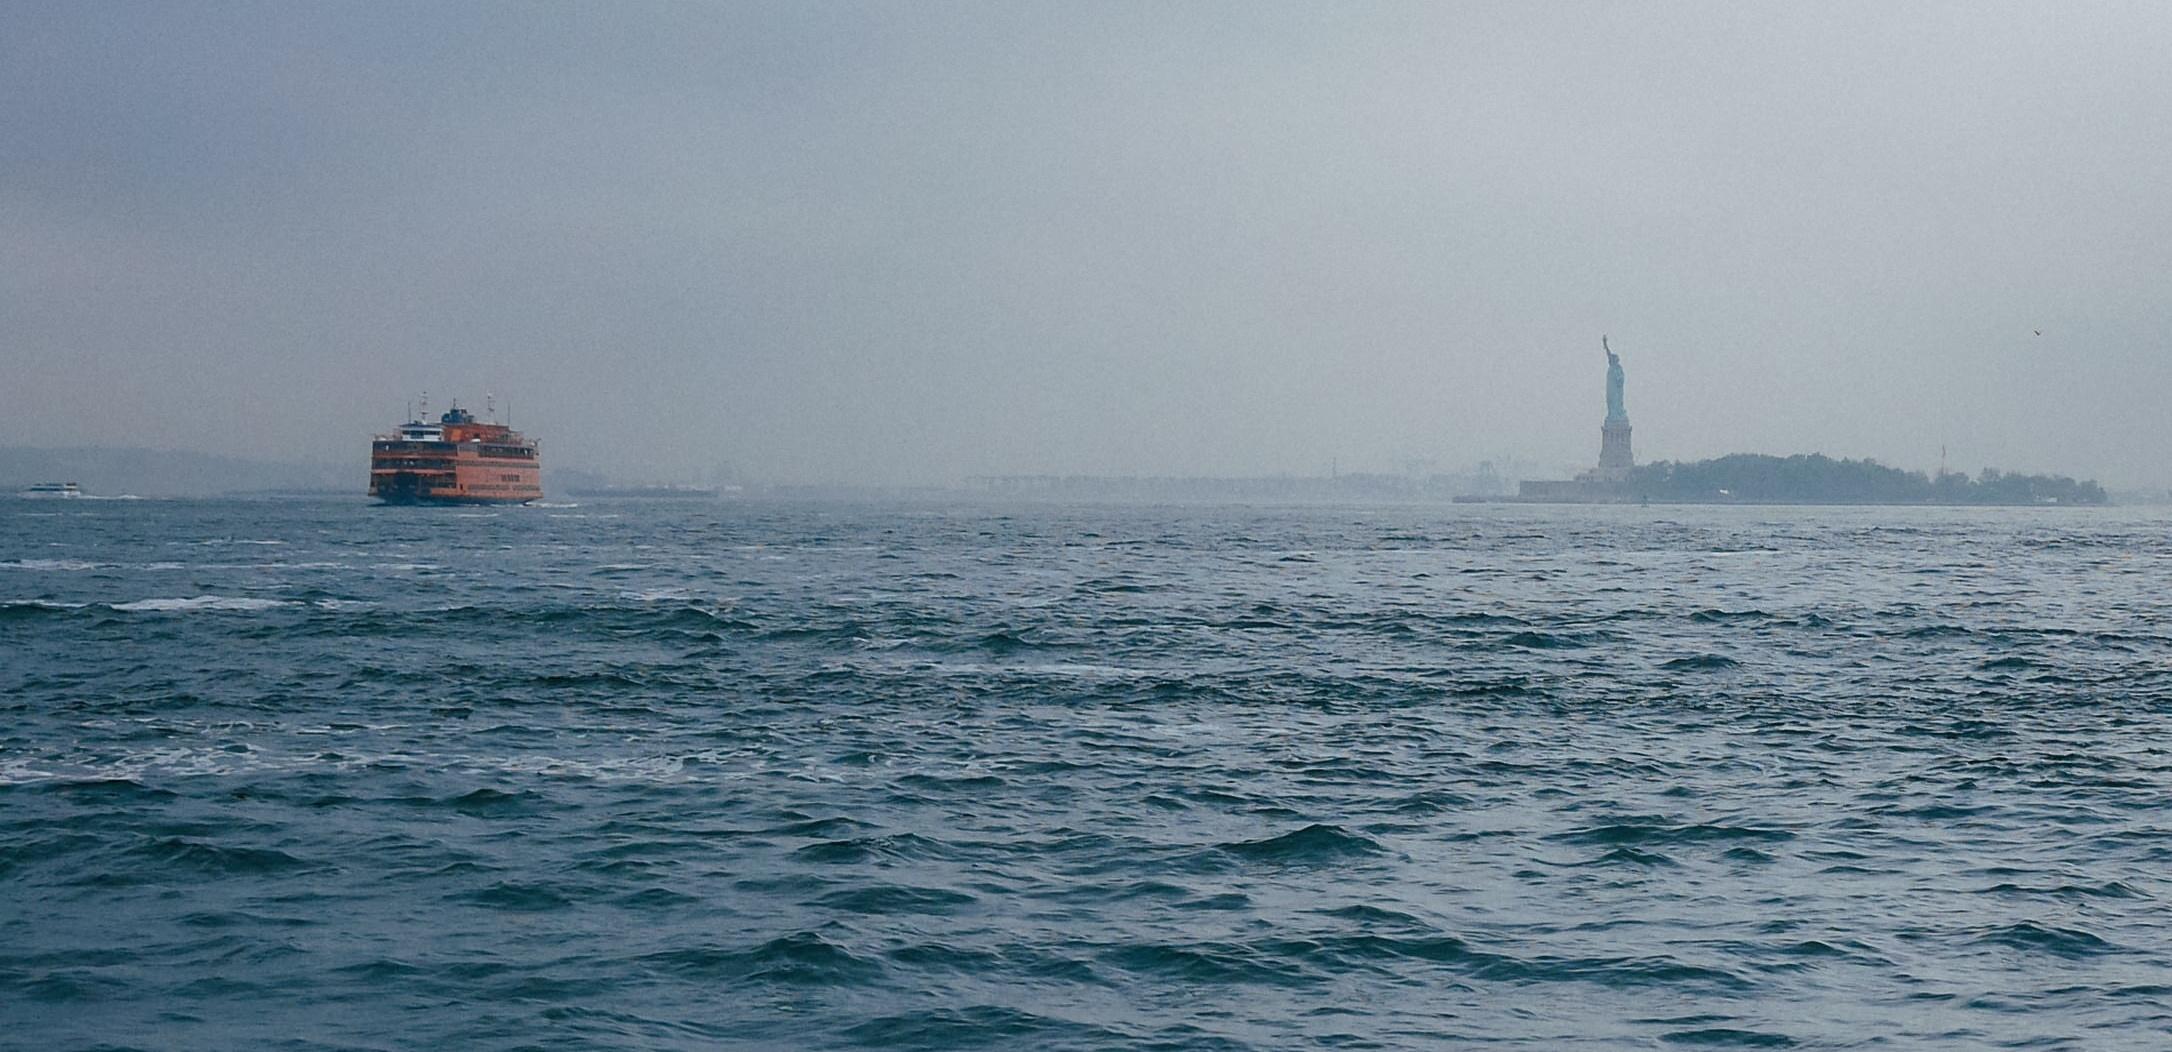 The Statue of Liberty in the distance from the ocean.